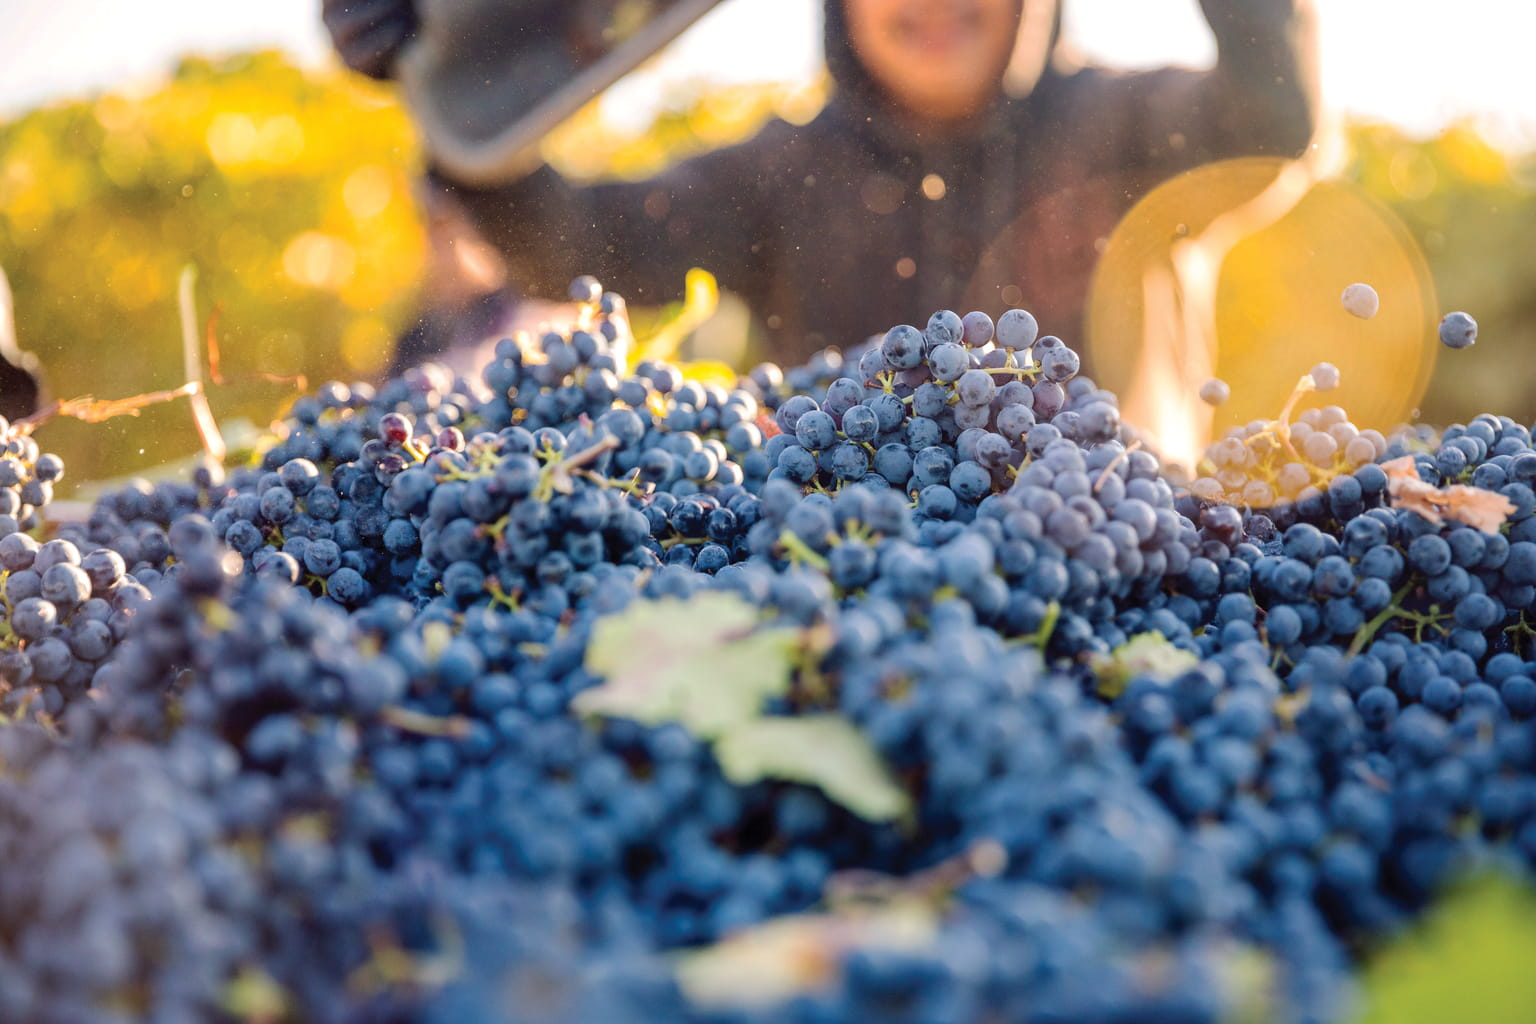 Harvested cabernet sauvignon grapes on the gondola with a worker in the background